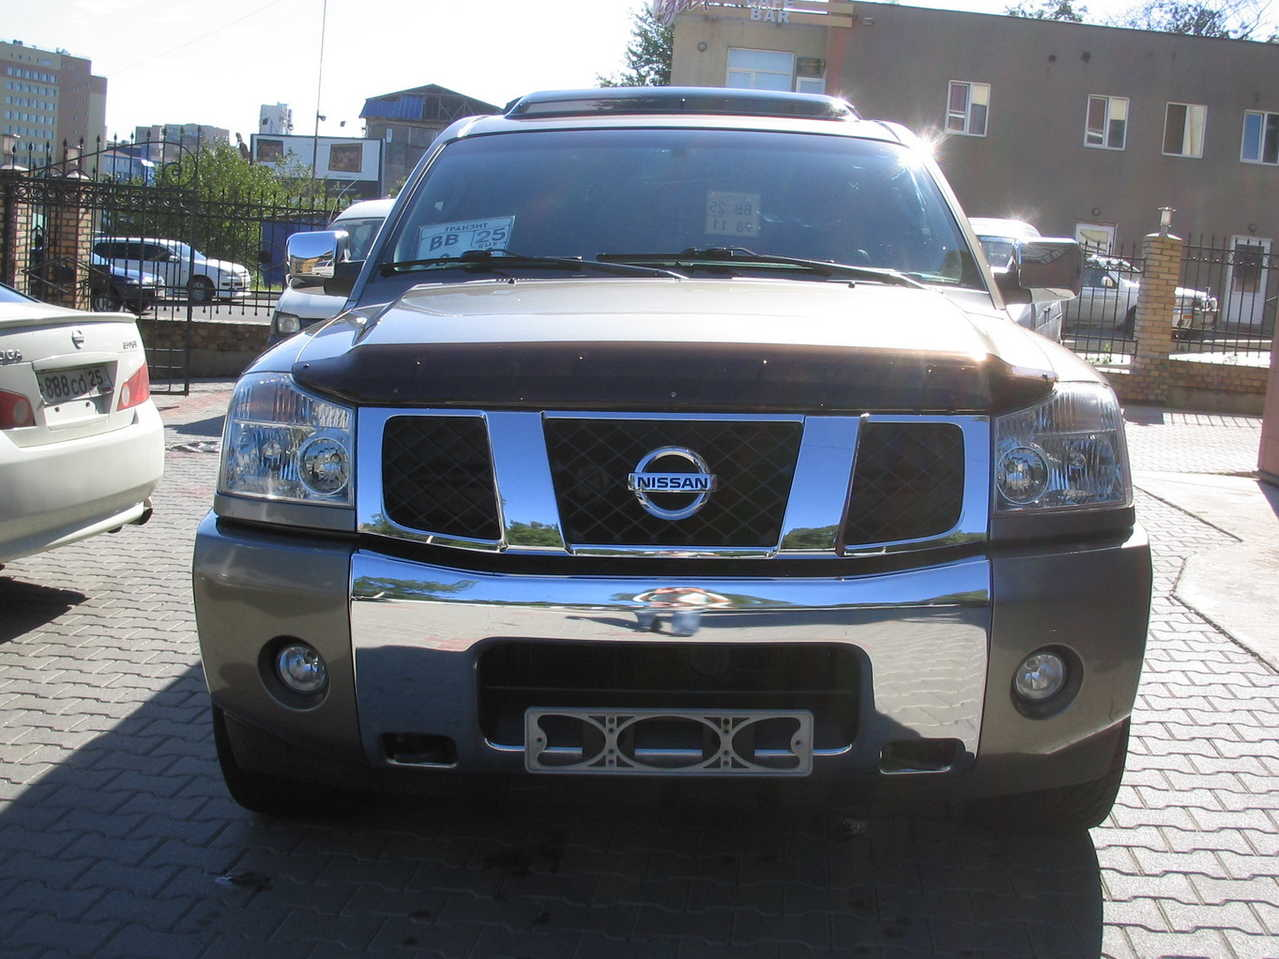 2006 nissan armada pictures gasoline automatic for sale. Black Bedroom Furniture Sets. Home Design Ideas